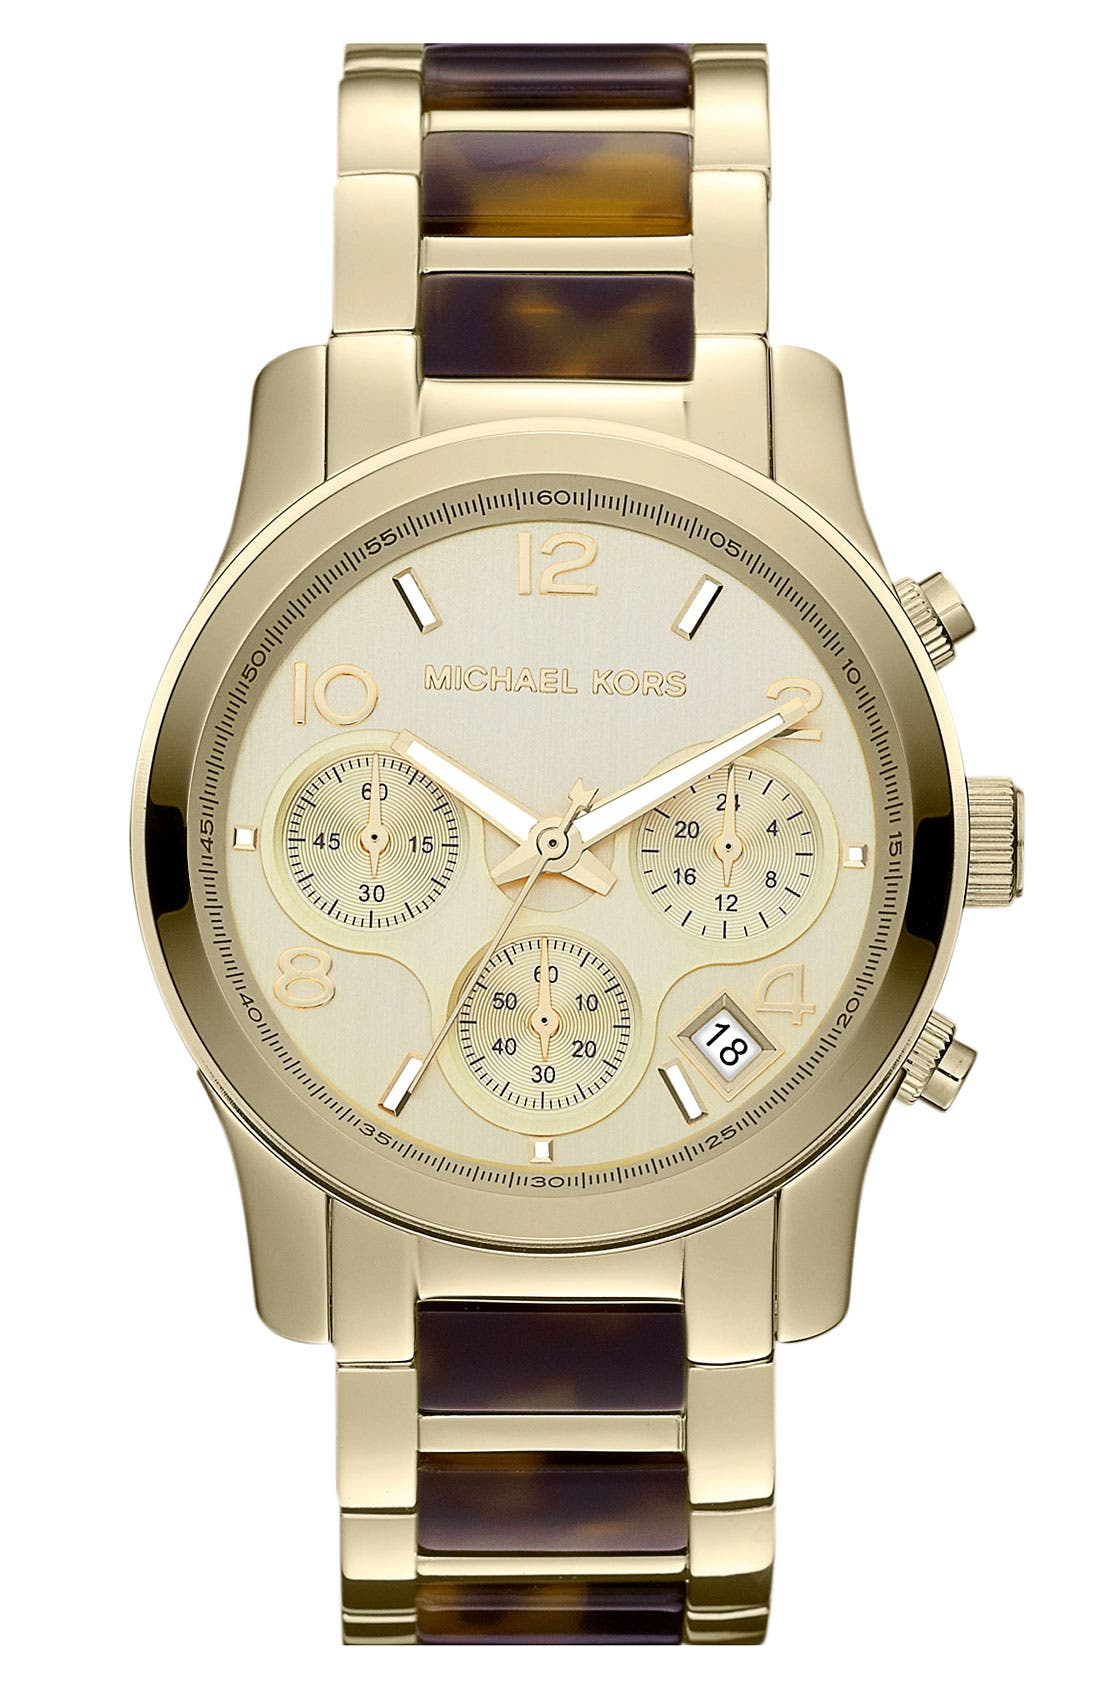 Main Image - Michael Kors 'Runway' Chronograph Bracelet Watch, 38mm